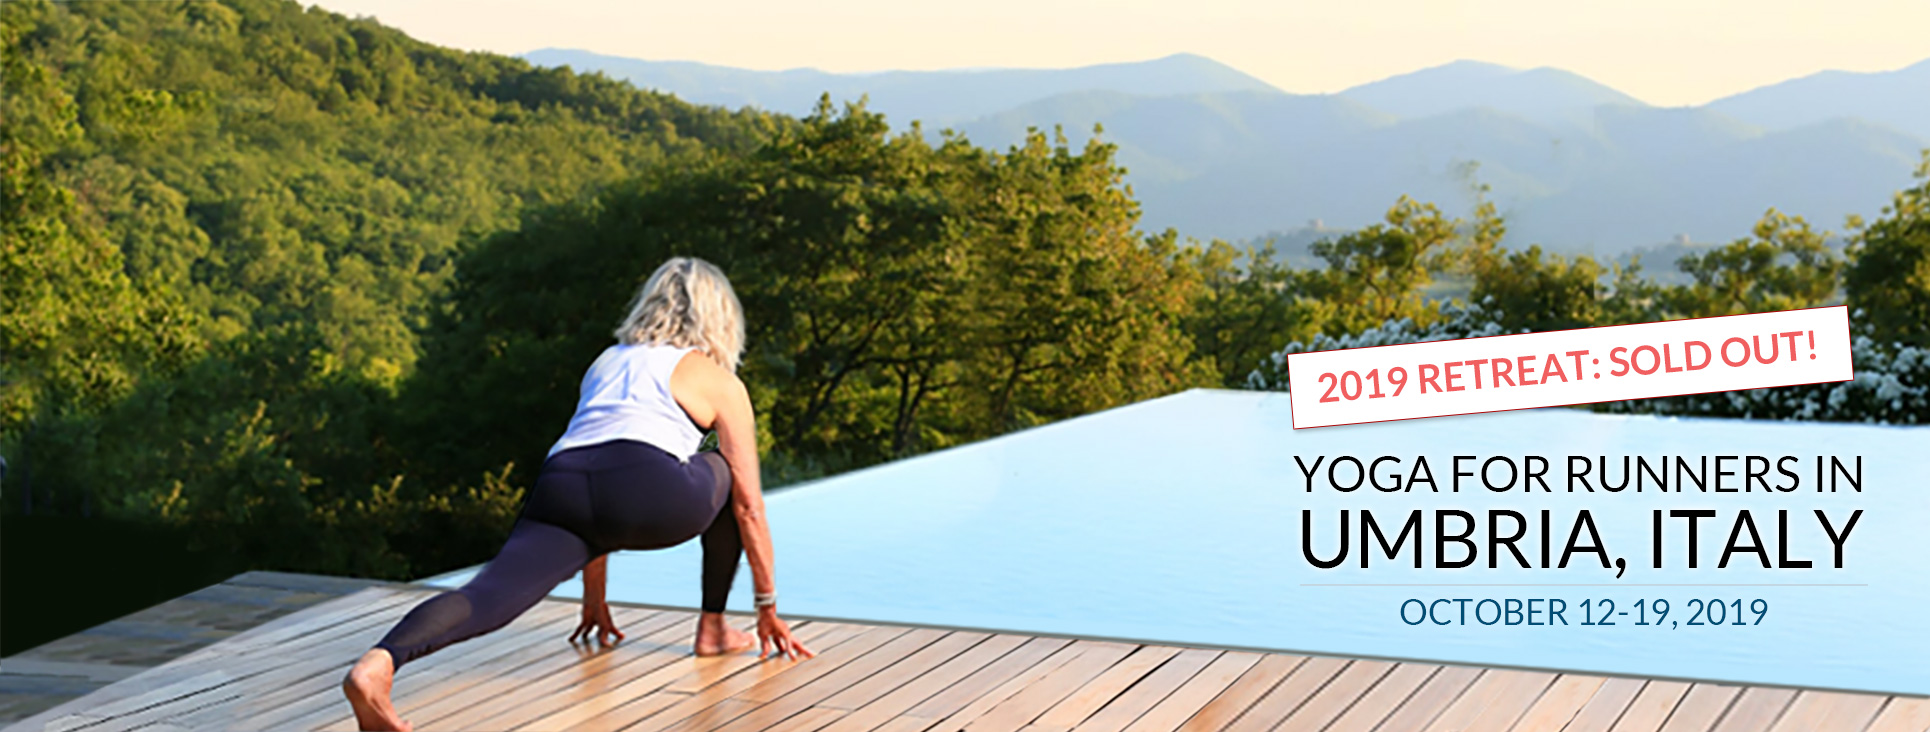 Yoga for Runners in Italy - Oct 12-19, 2019 SOLD OUT